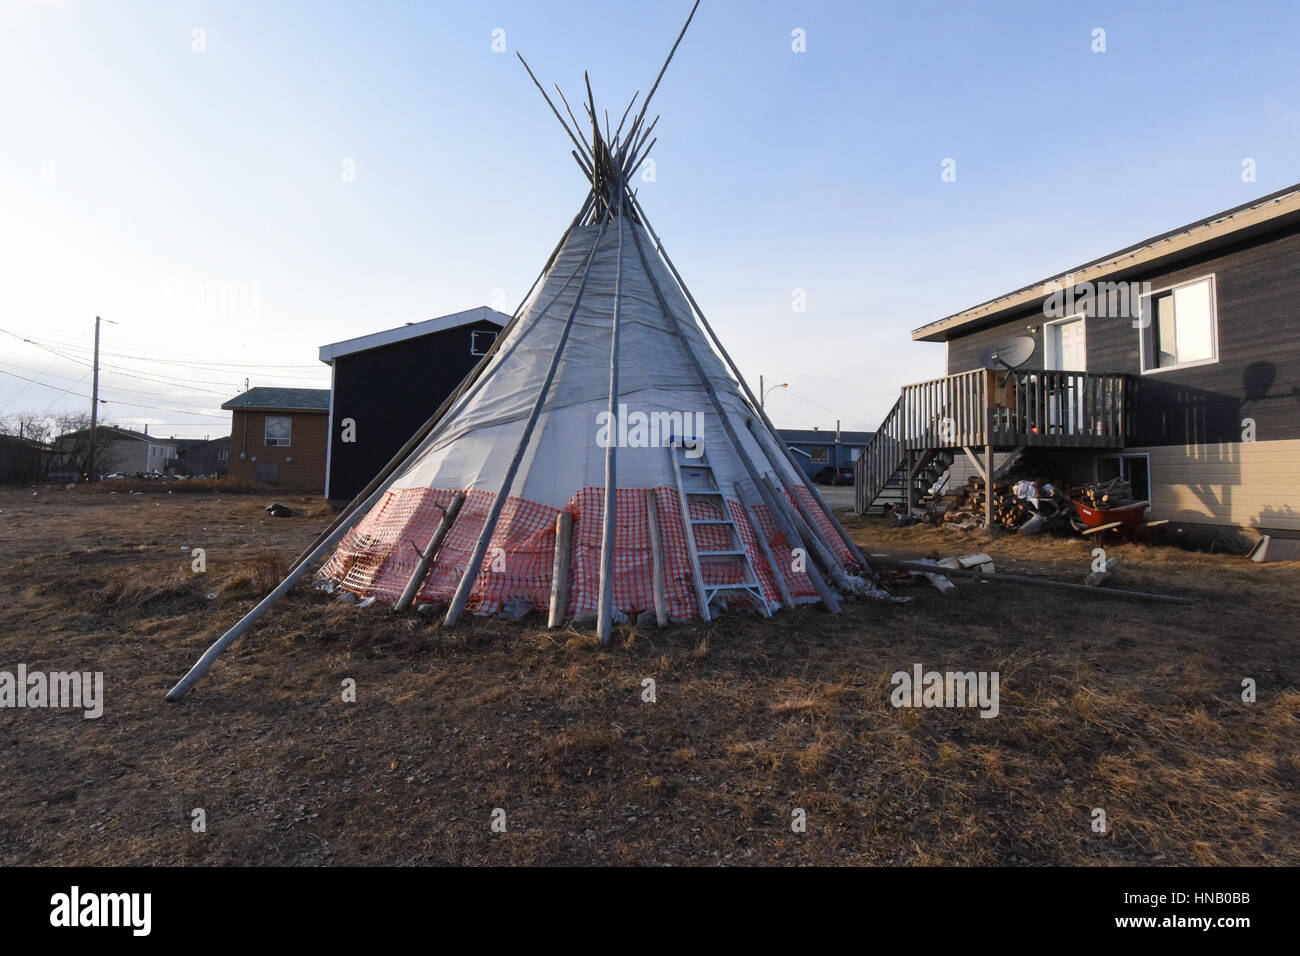 tepee in the backyard of a house northern quebec first nations